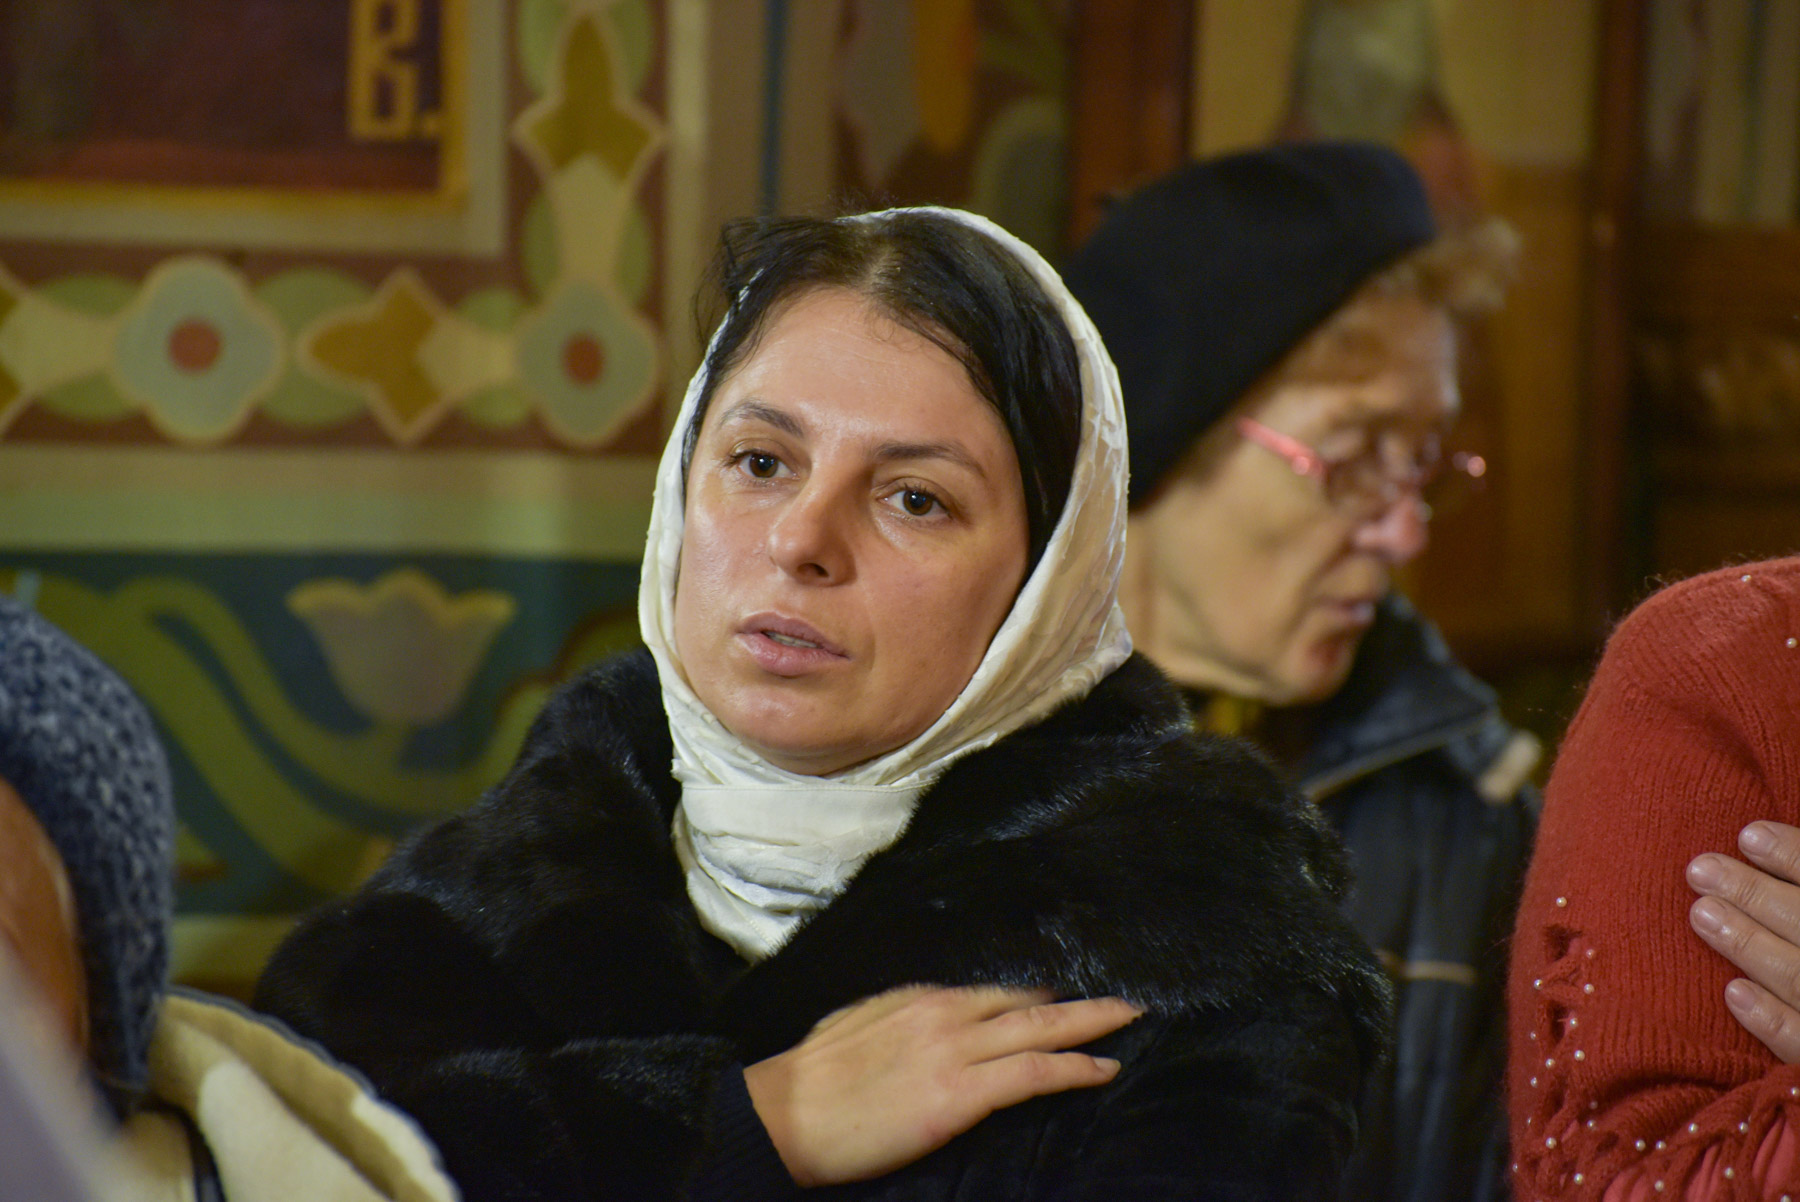 photos of orthodox christmas 0130 1